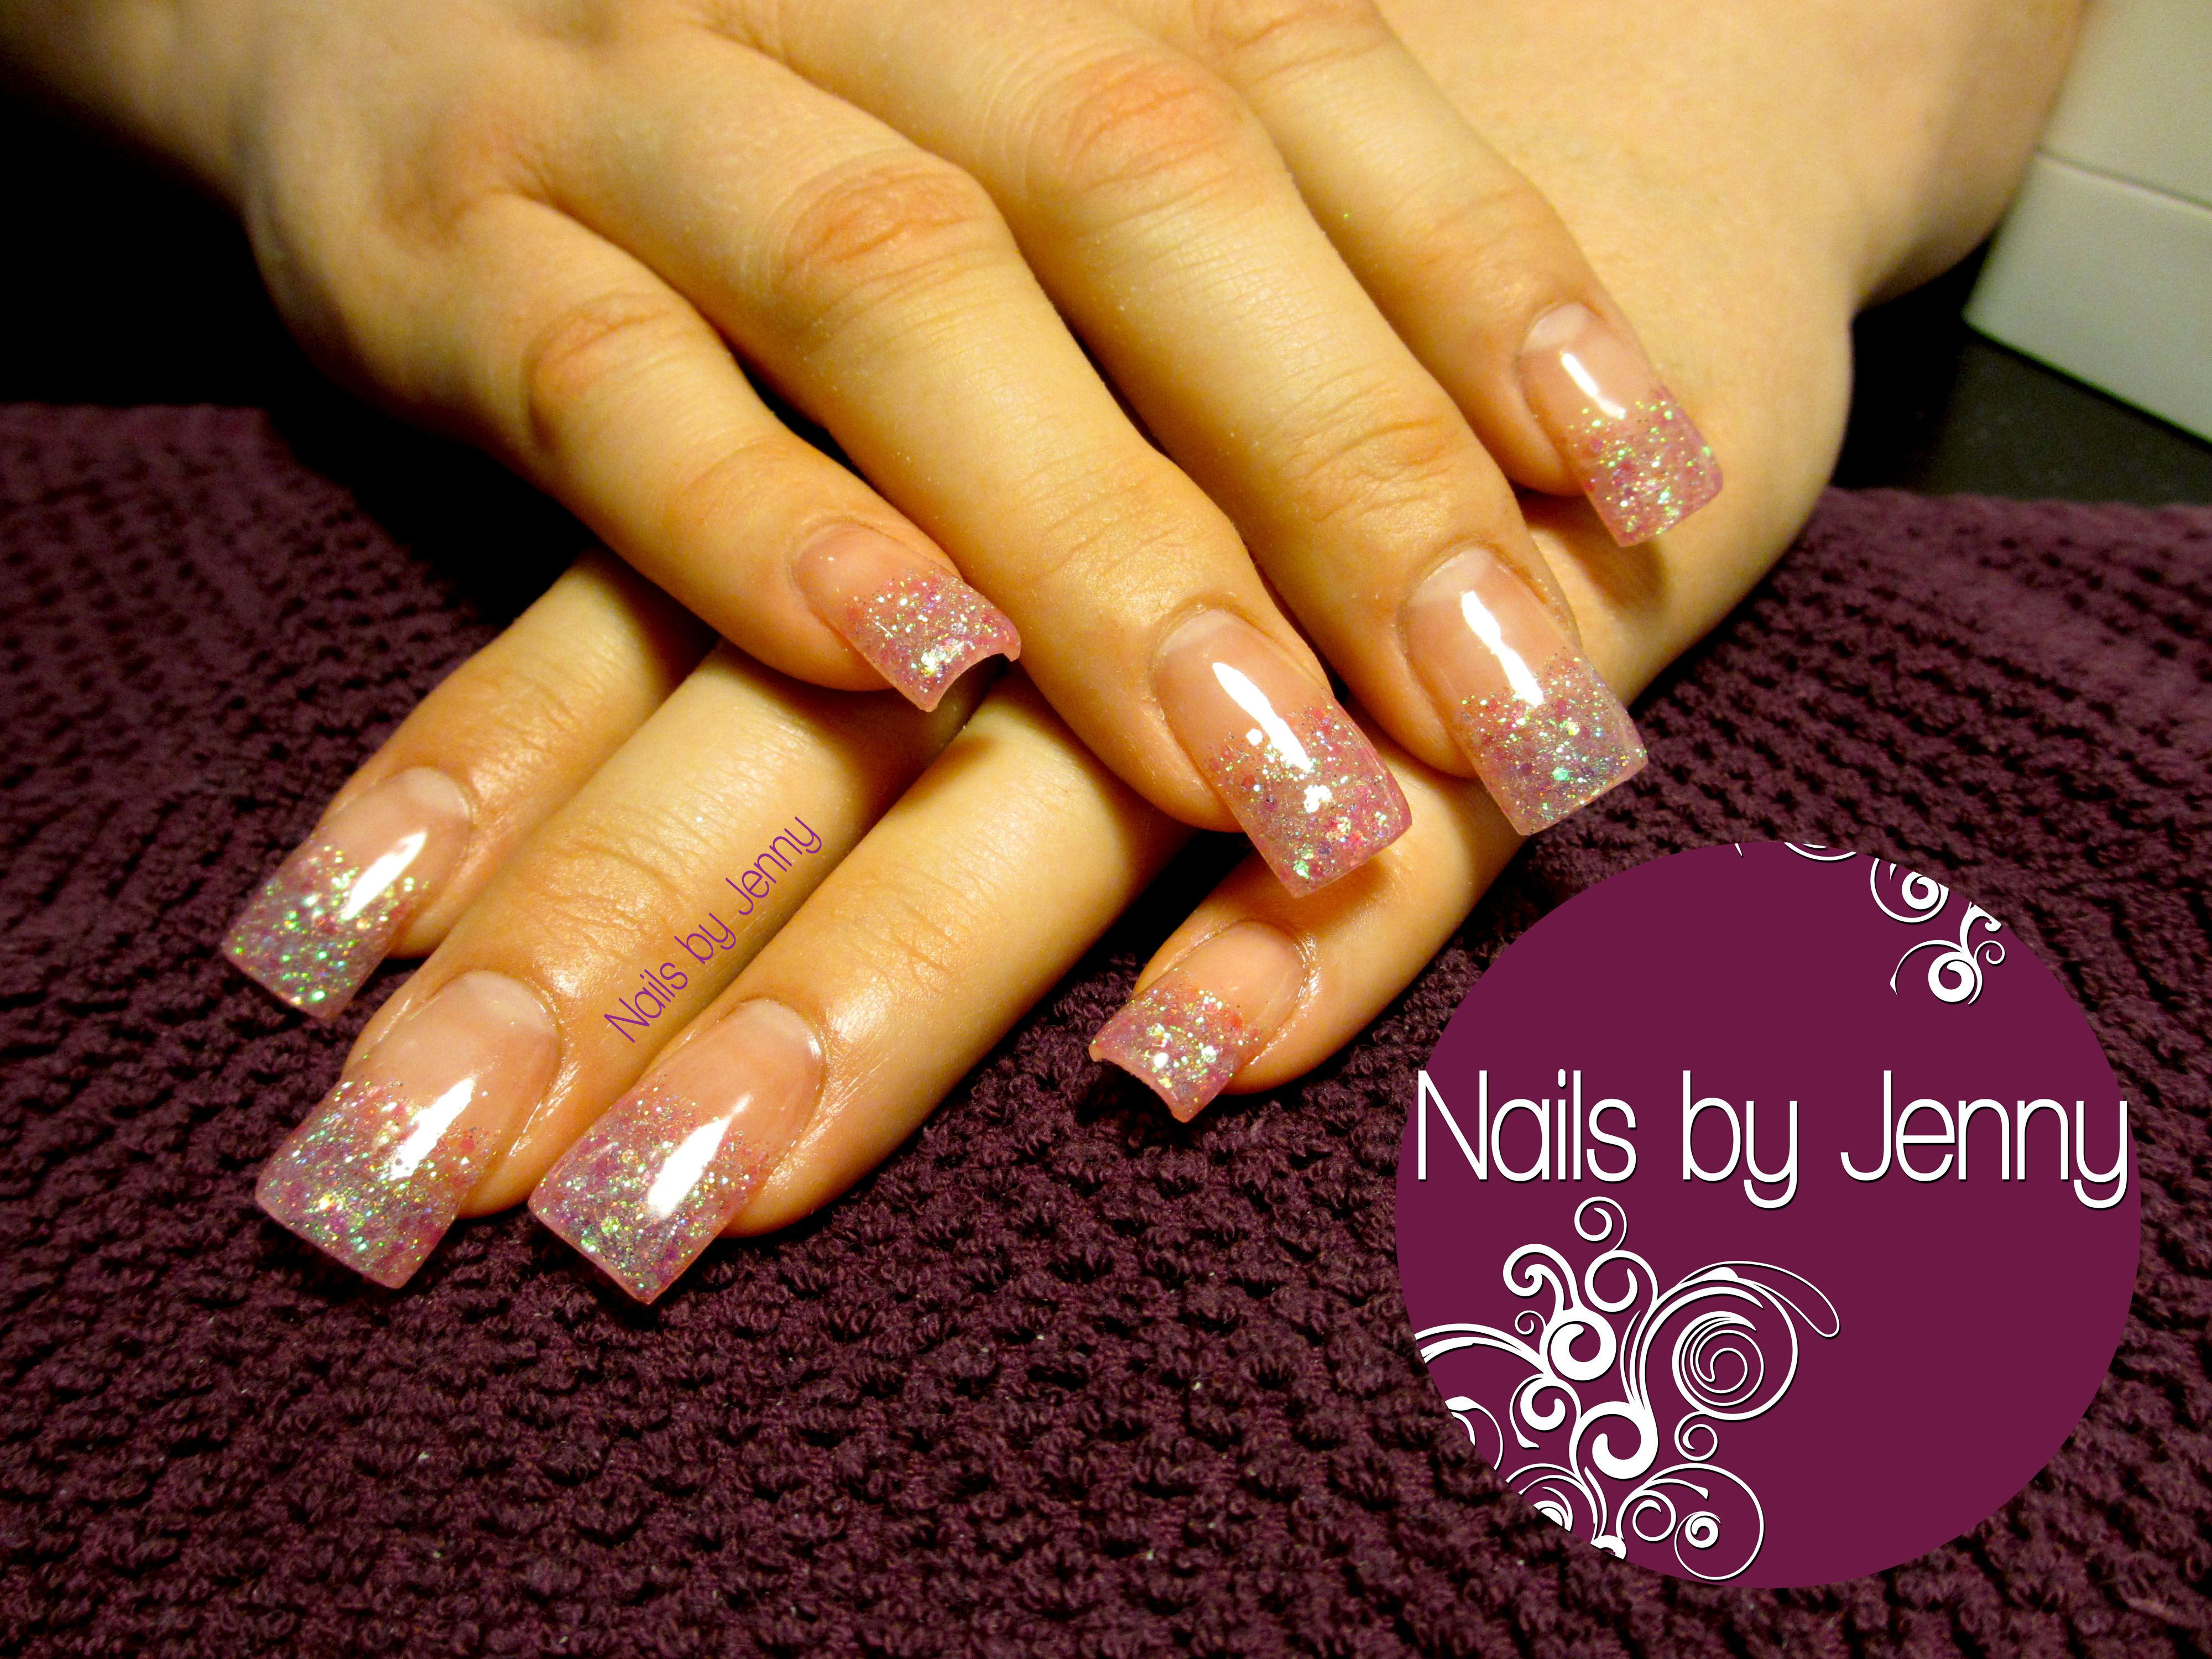 Full Set of Gel Nails with Clear Glitter Tips -- Nails by Jenny in ...